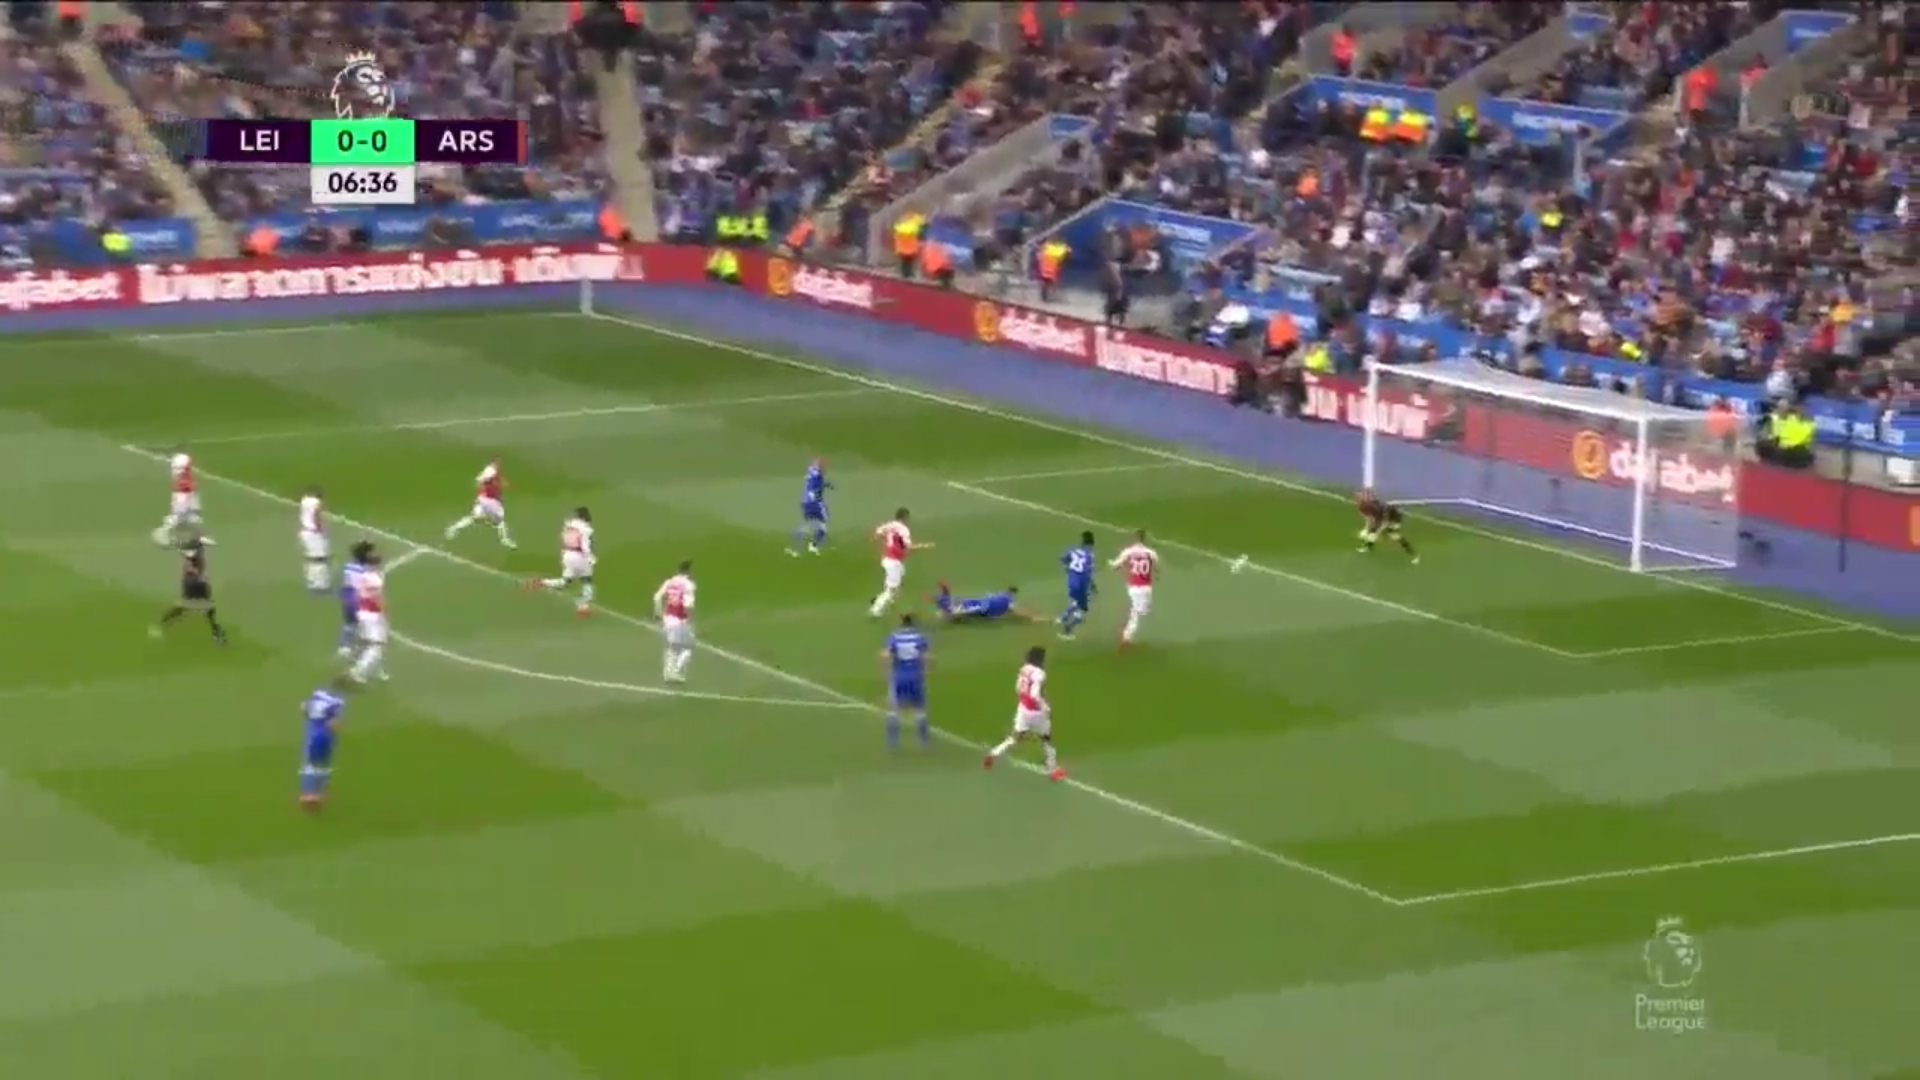 28-04-2019 - Leicester City 3-0 Arsenal